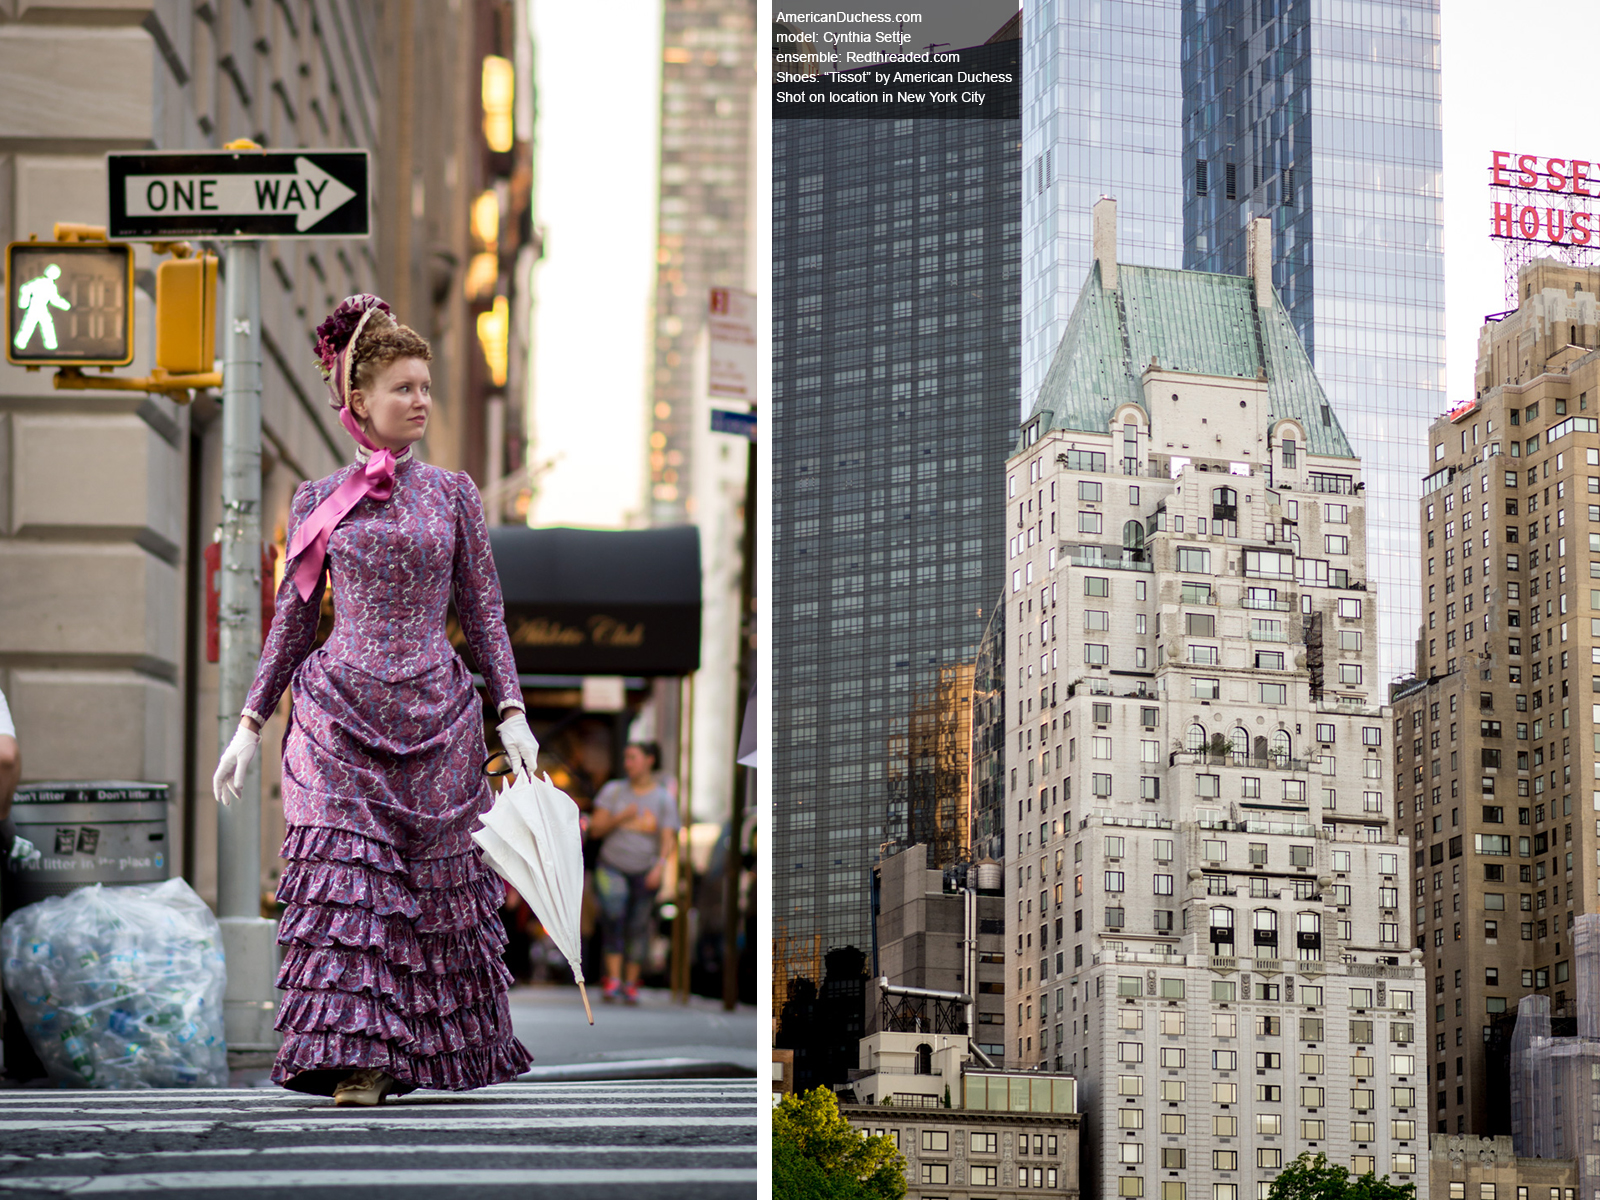 Cynthia Settje of Redthreaded in 1880s bustle dress in New York City, photographed by Lauren Stowell of AmericanDuchess.com